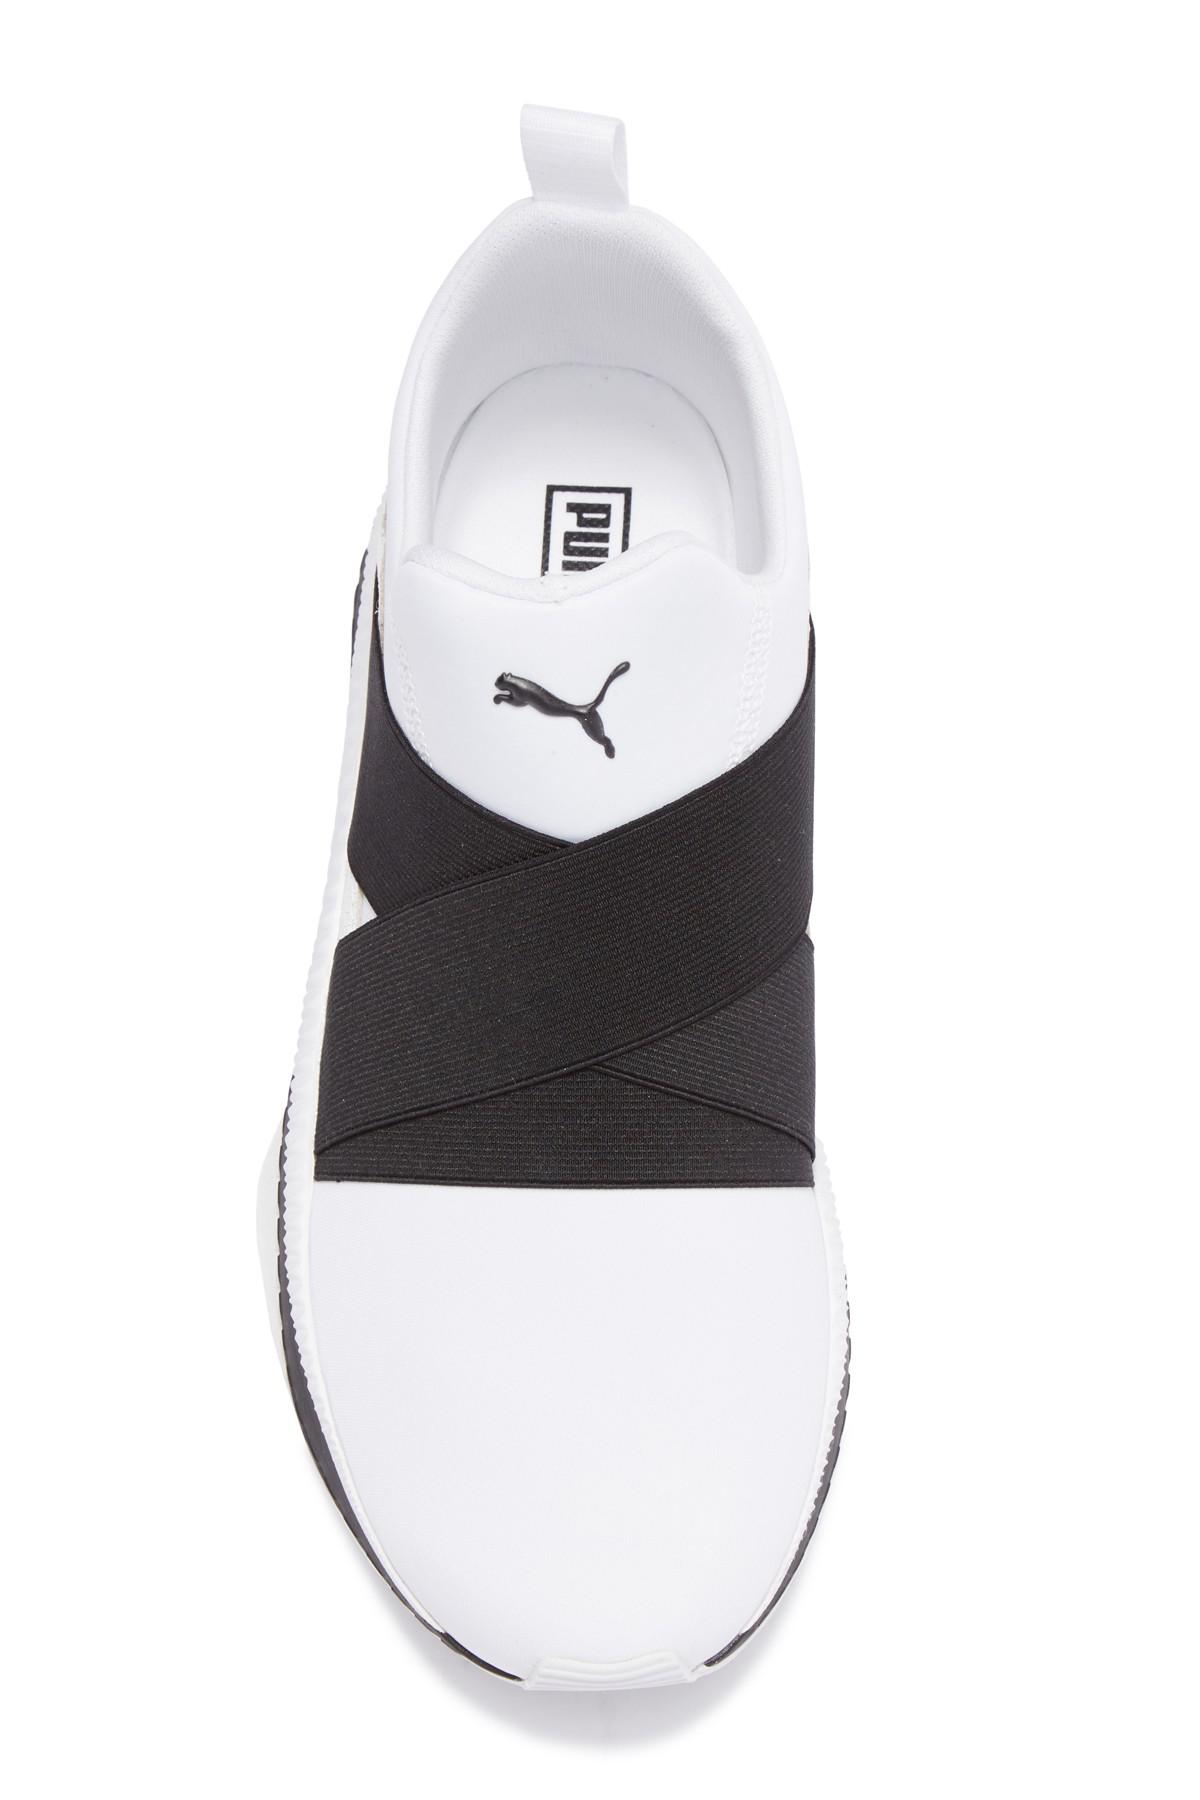 1902b2011ce8 PUMA - White Tsugi Zephyr Monolith Sneaker for Men - Lyst. View fullscreen